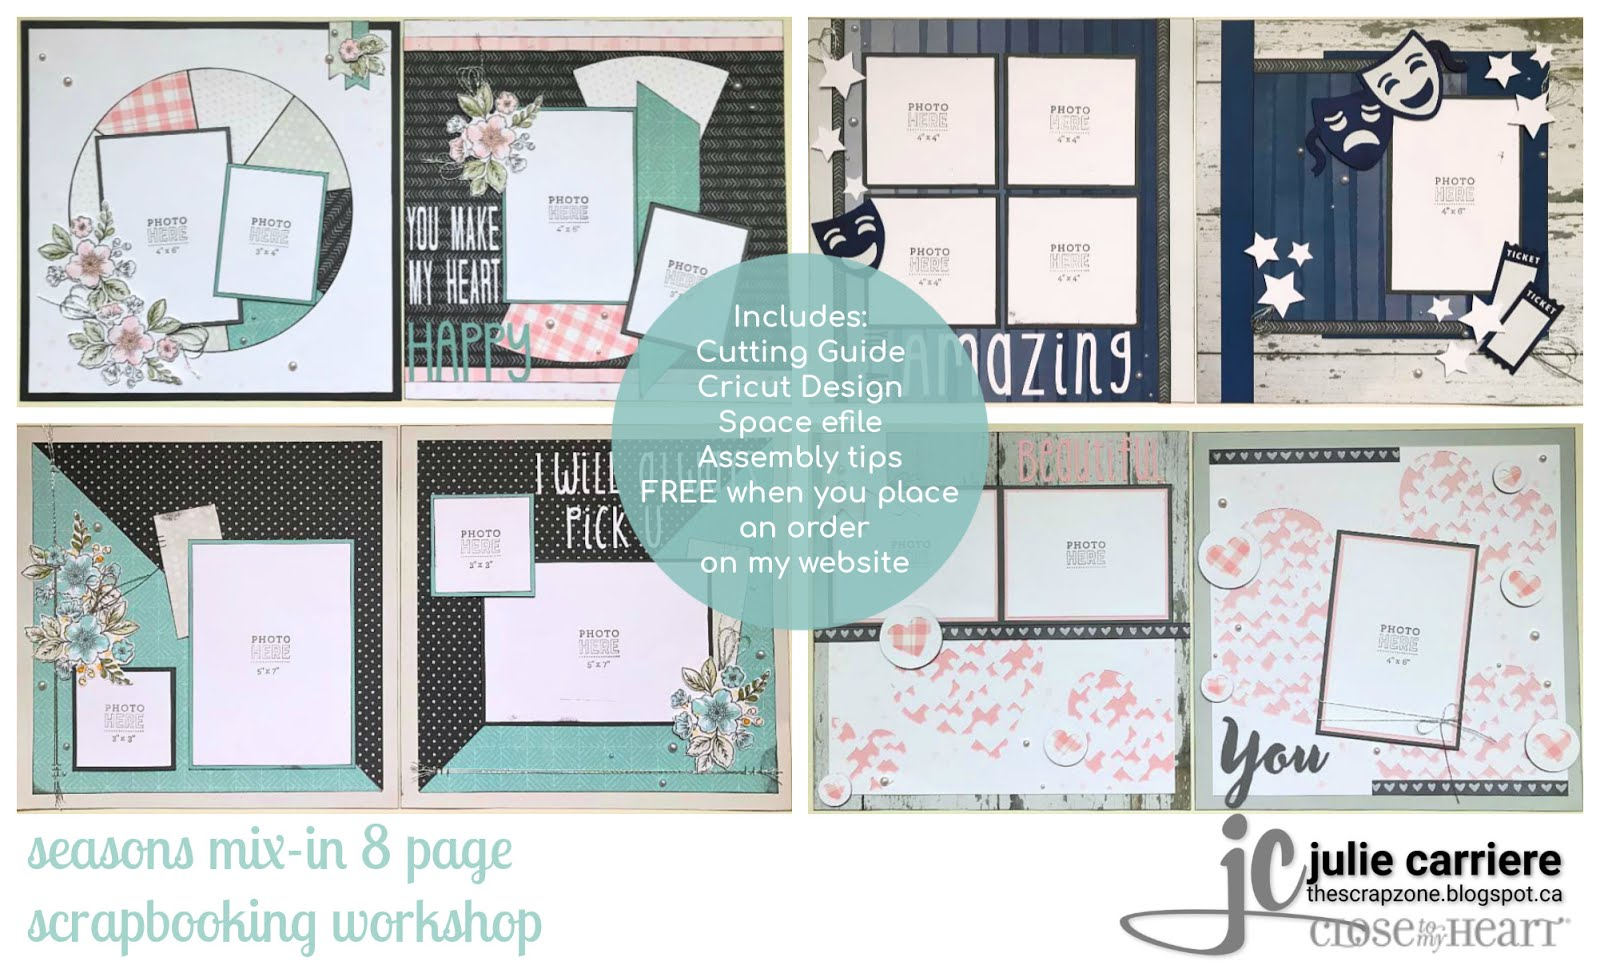 seasons mix-in scrapbooking assembly guide